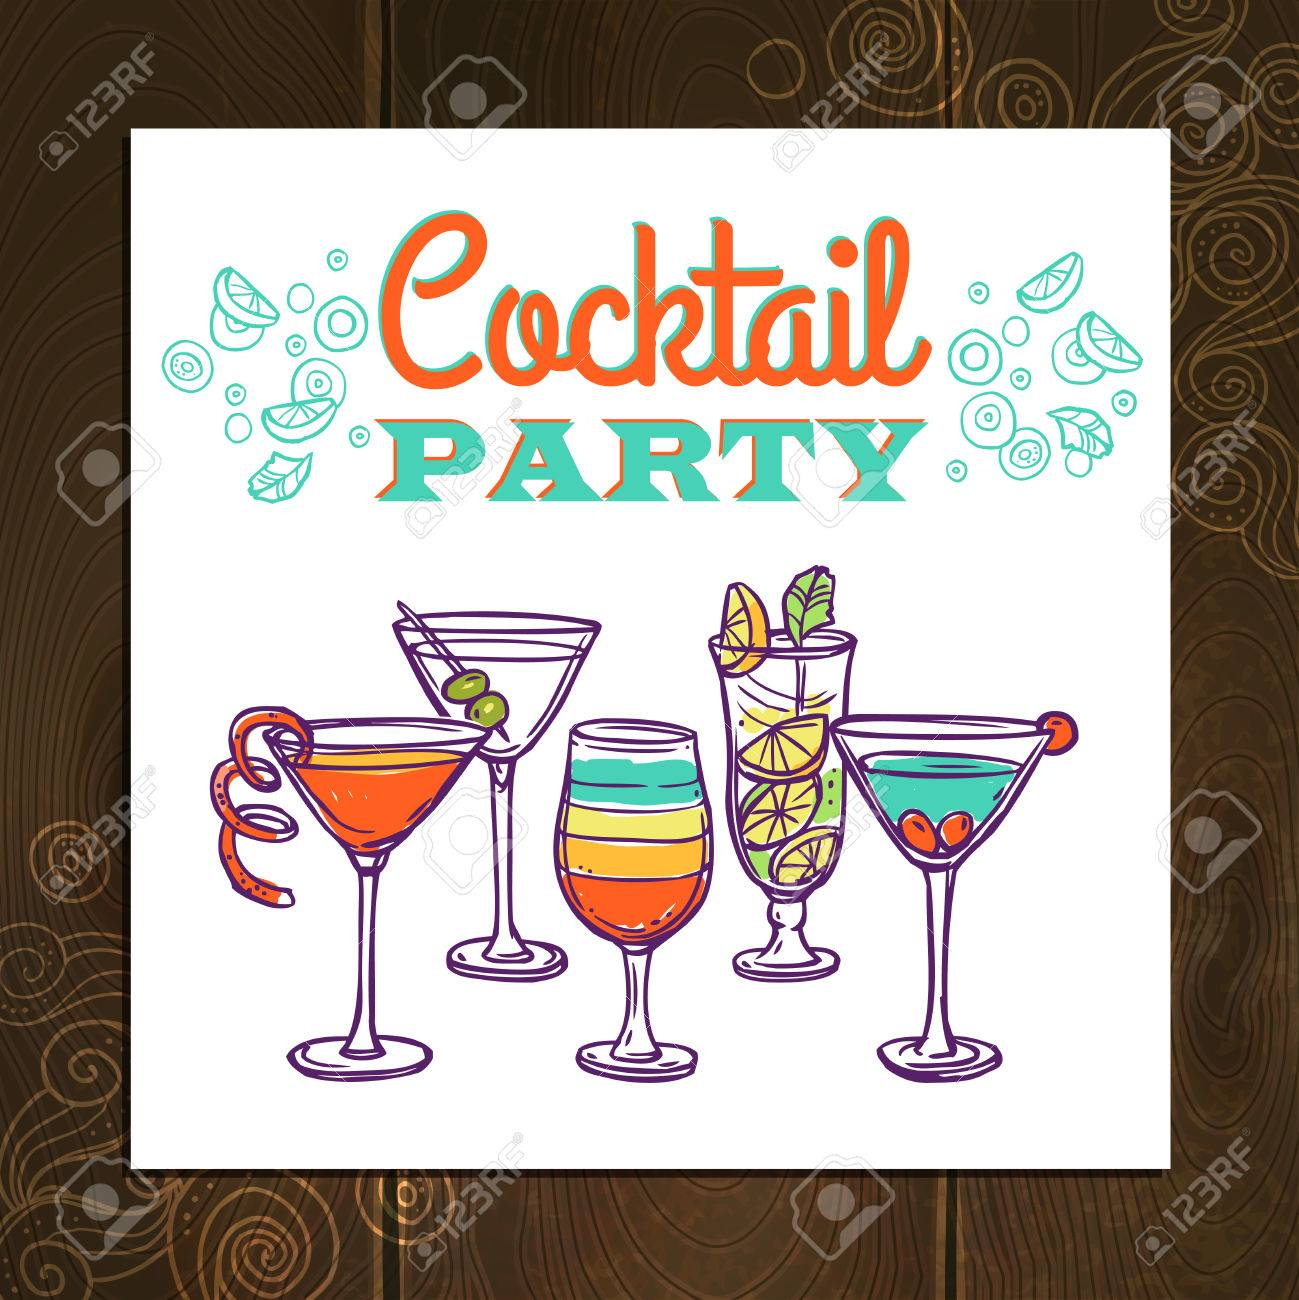 cocktail party invitation poster with hand drawn alcohol drinks